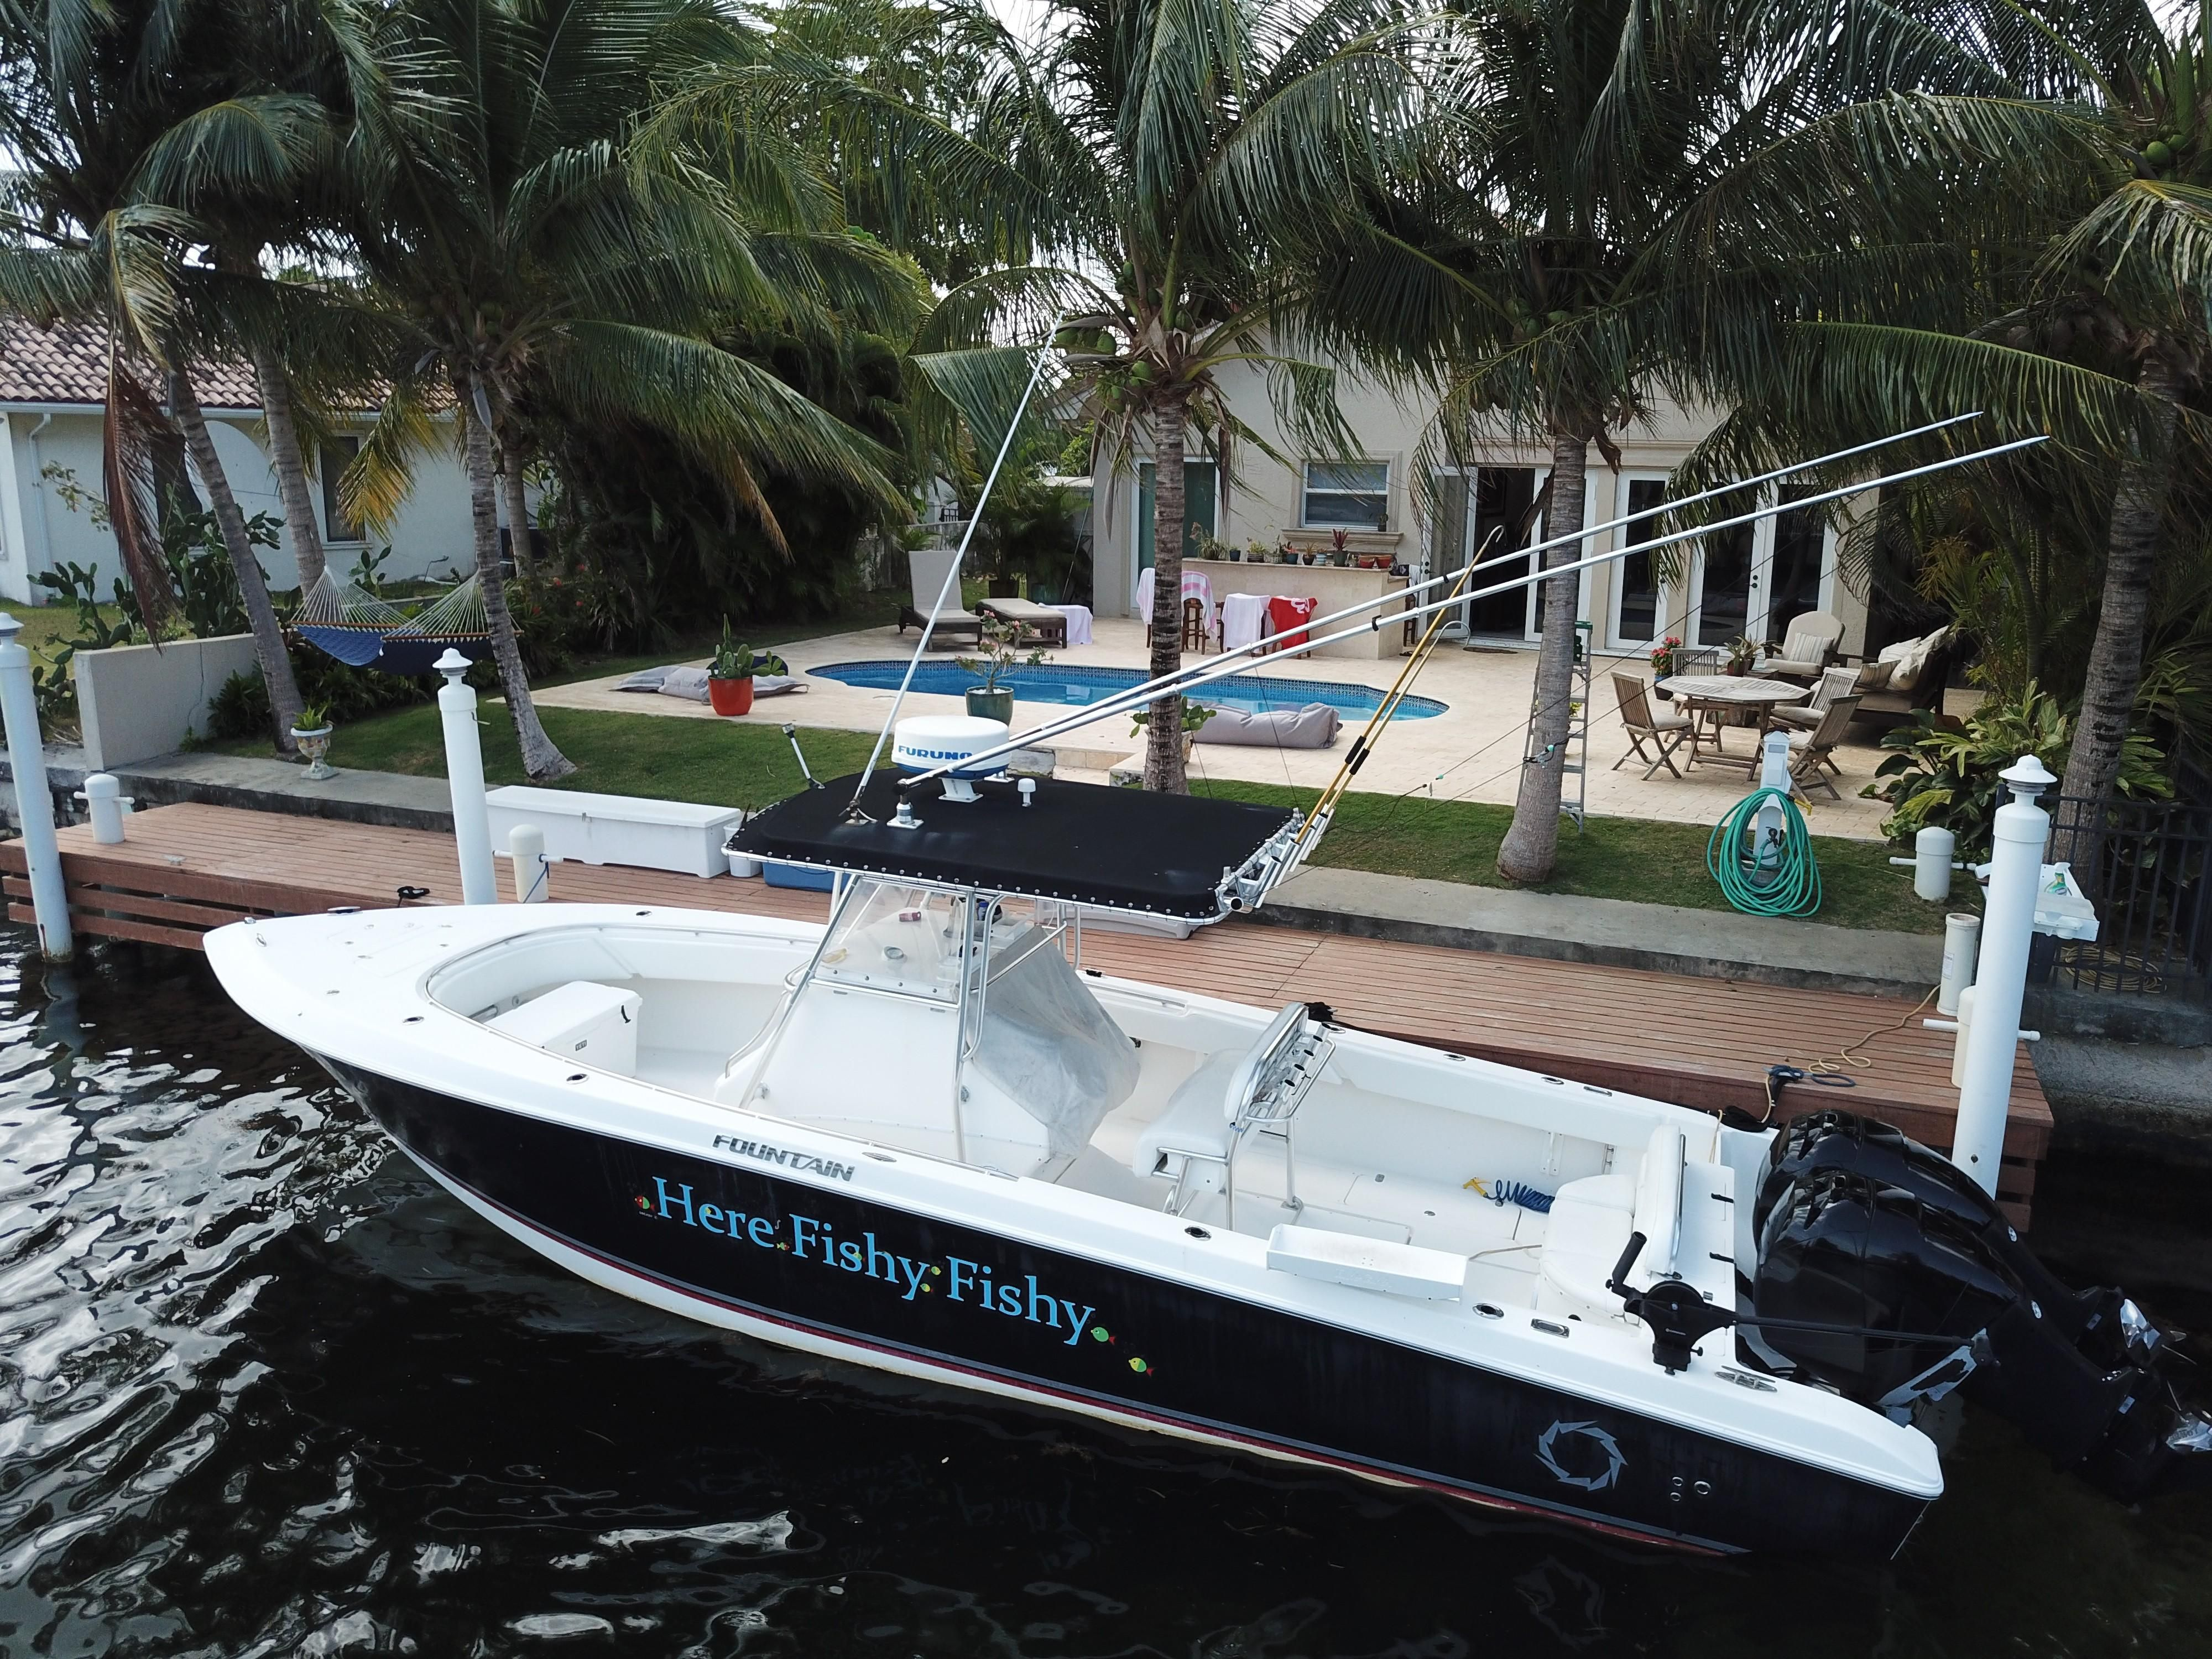 2006 fountain 32 center console power boat for sale - www yachtworld com   32cc fountain center console wiring diagram